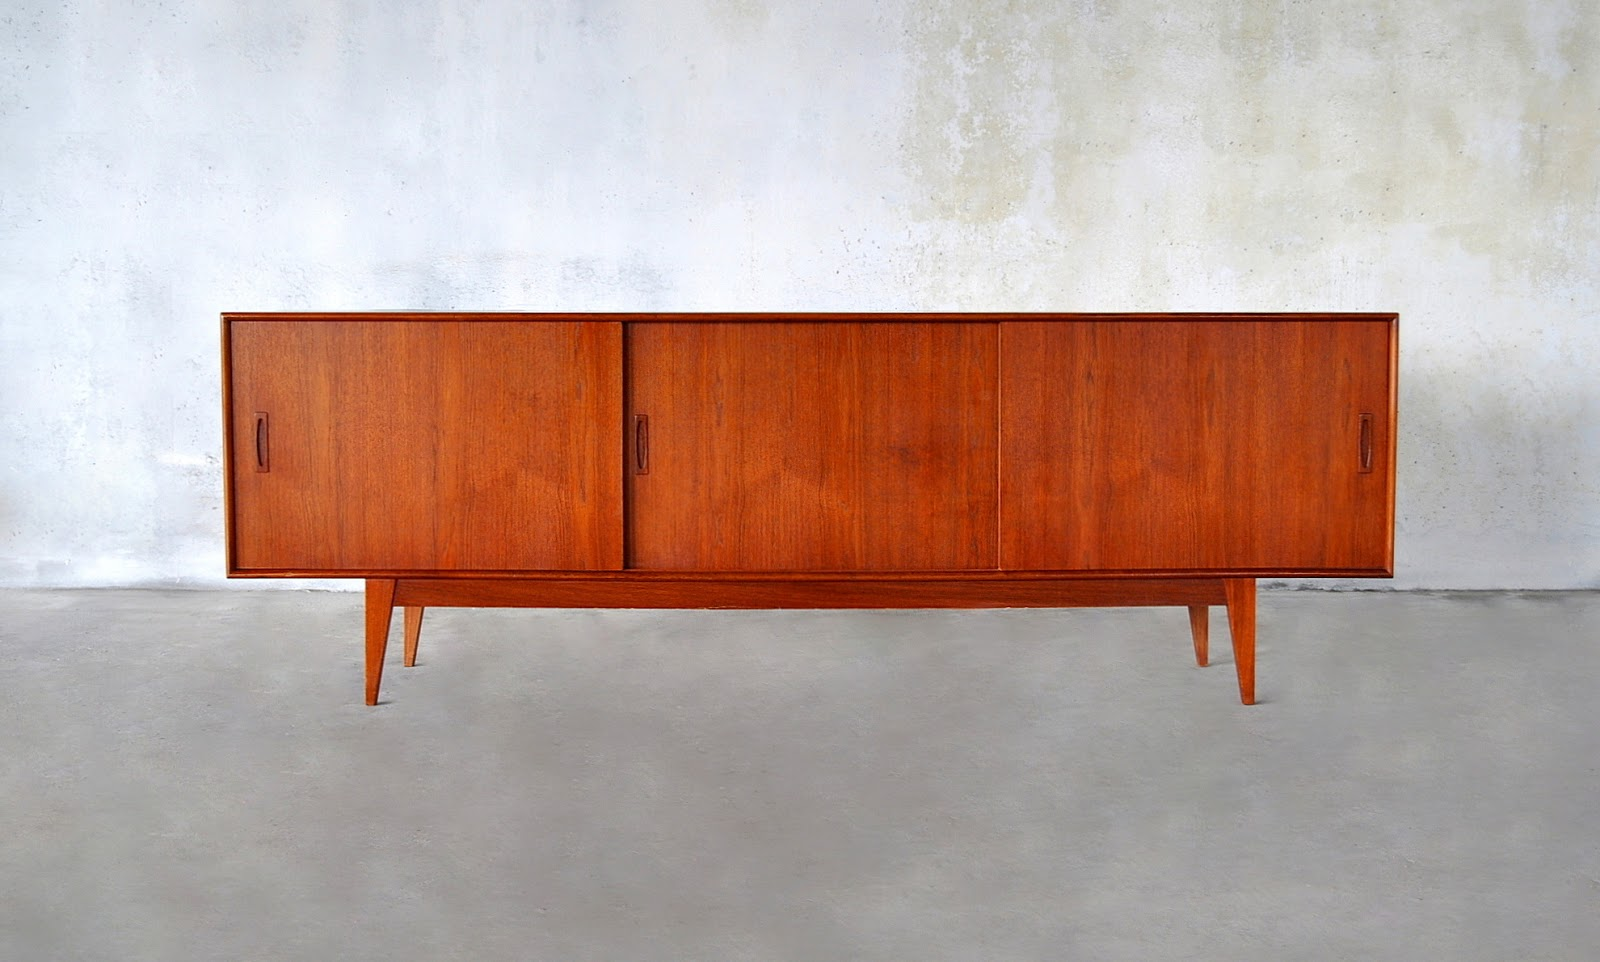 Danish Teak Credenza For Sale : Select modern: danish modern teak credenza bar sideboard or buffet